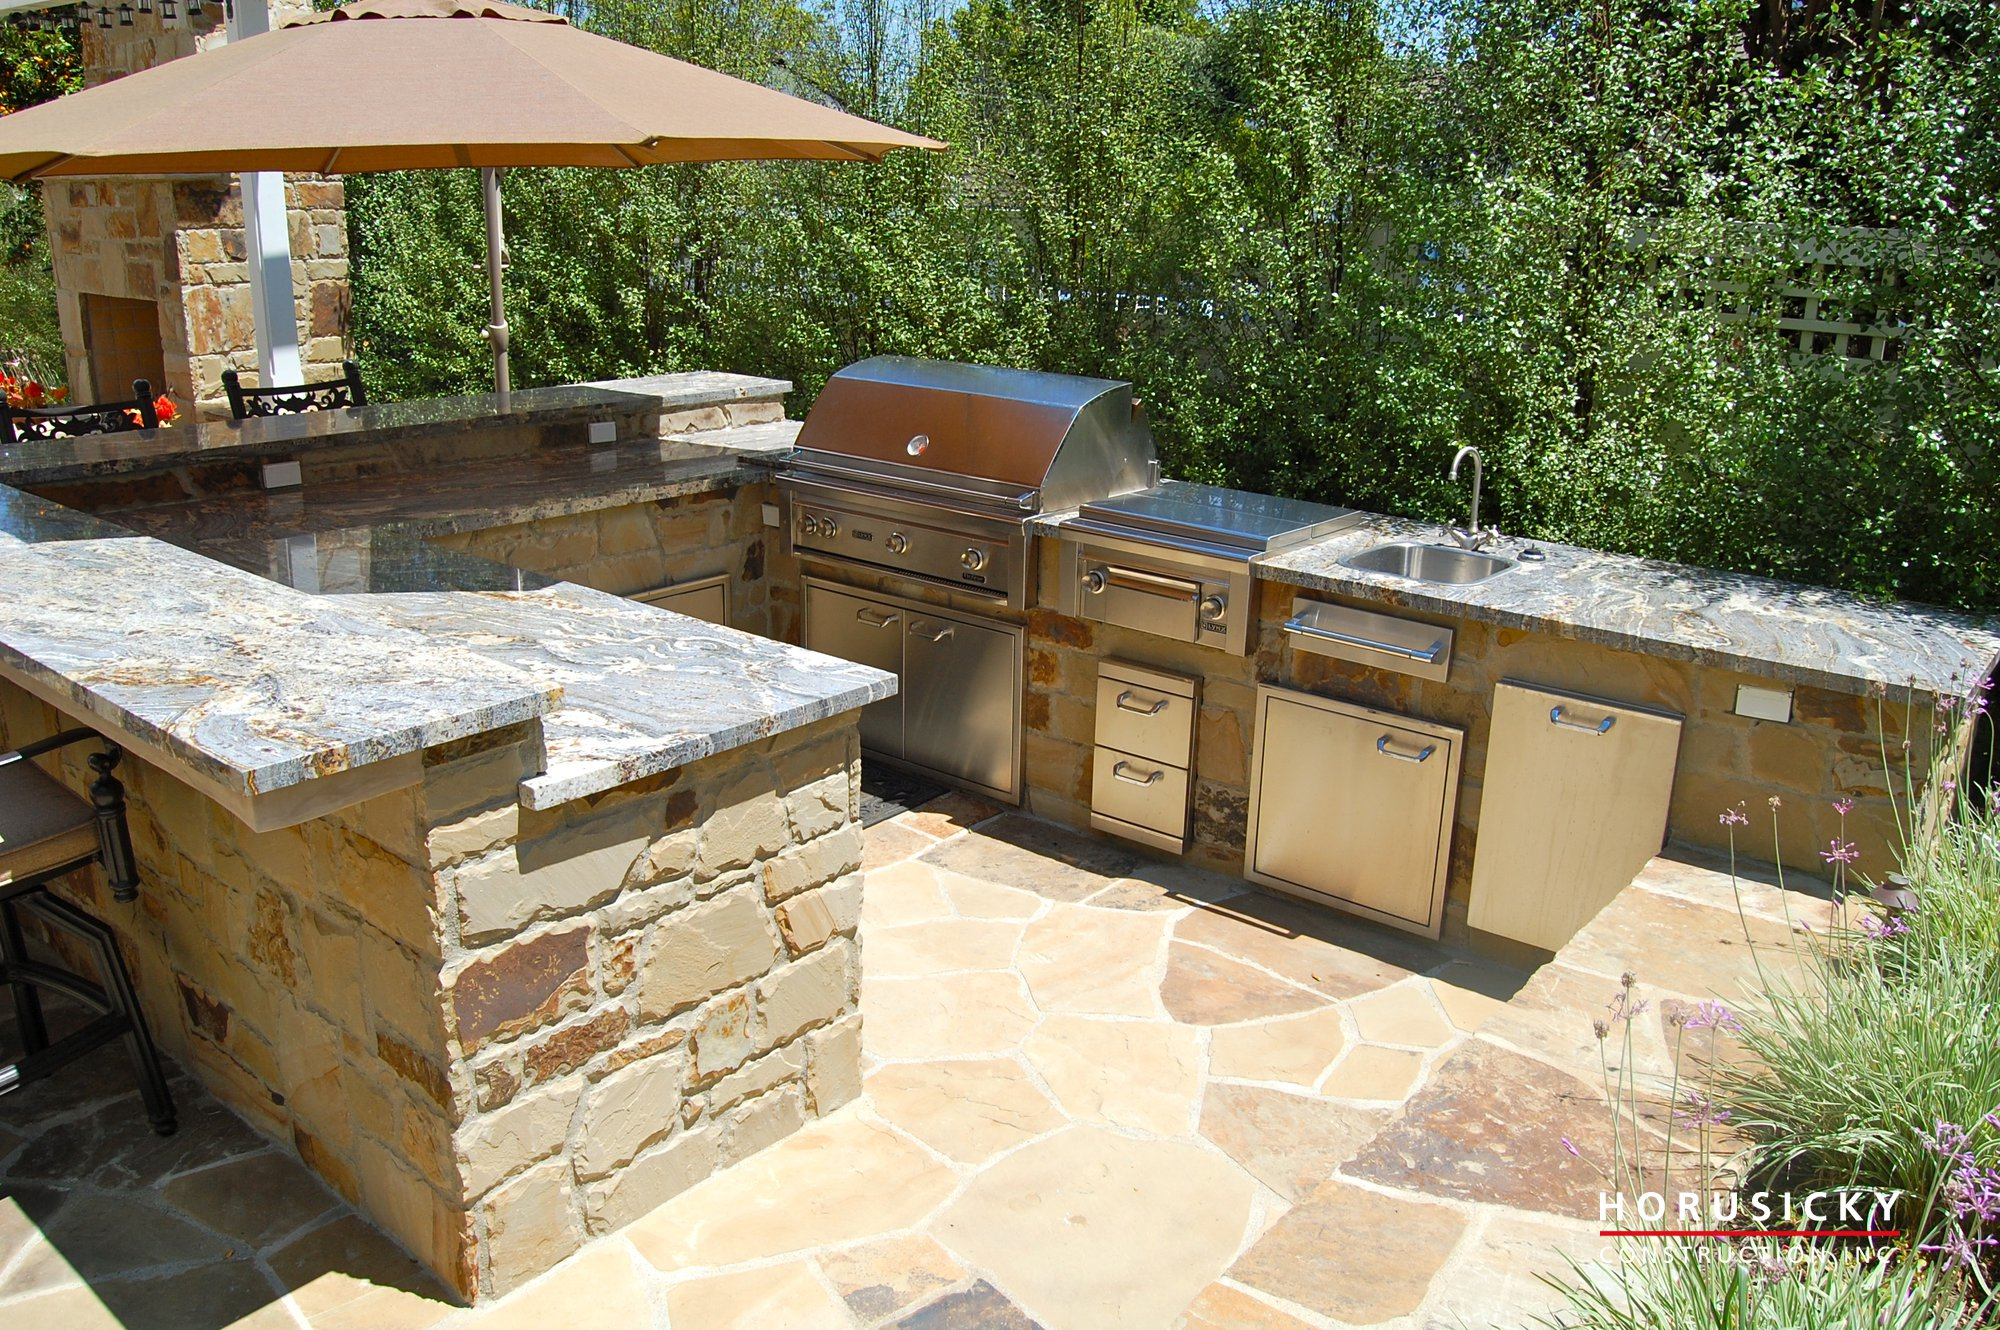 Outdoor Grilling Bar Construction : Outdoor kitchens and bbq grills horusicky construction